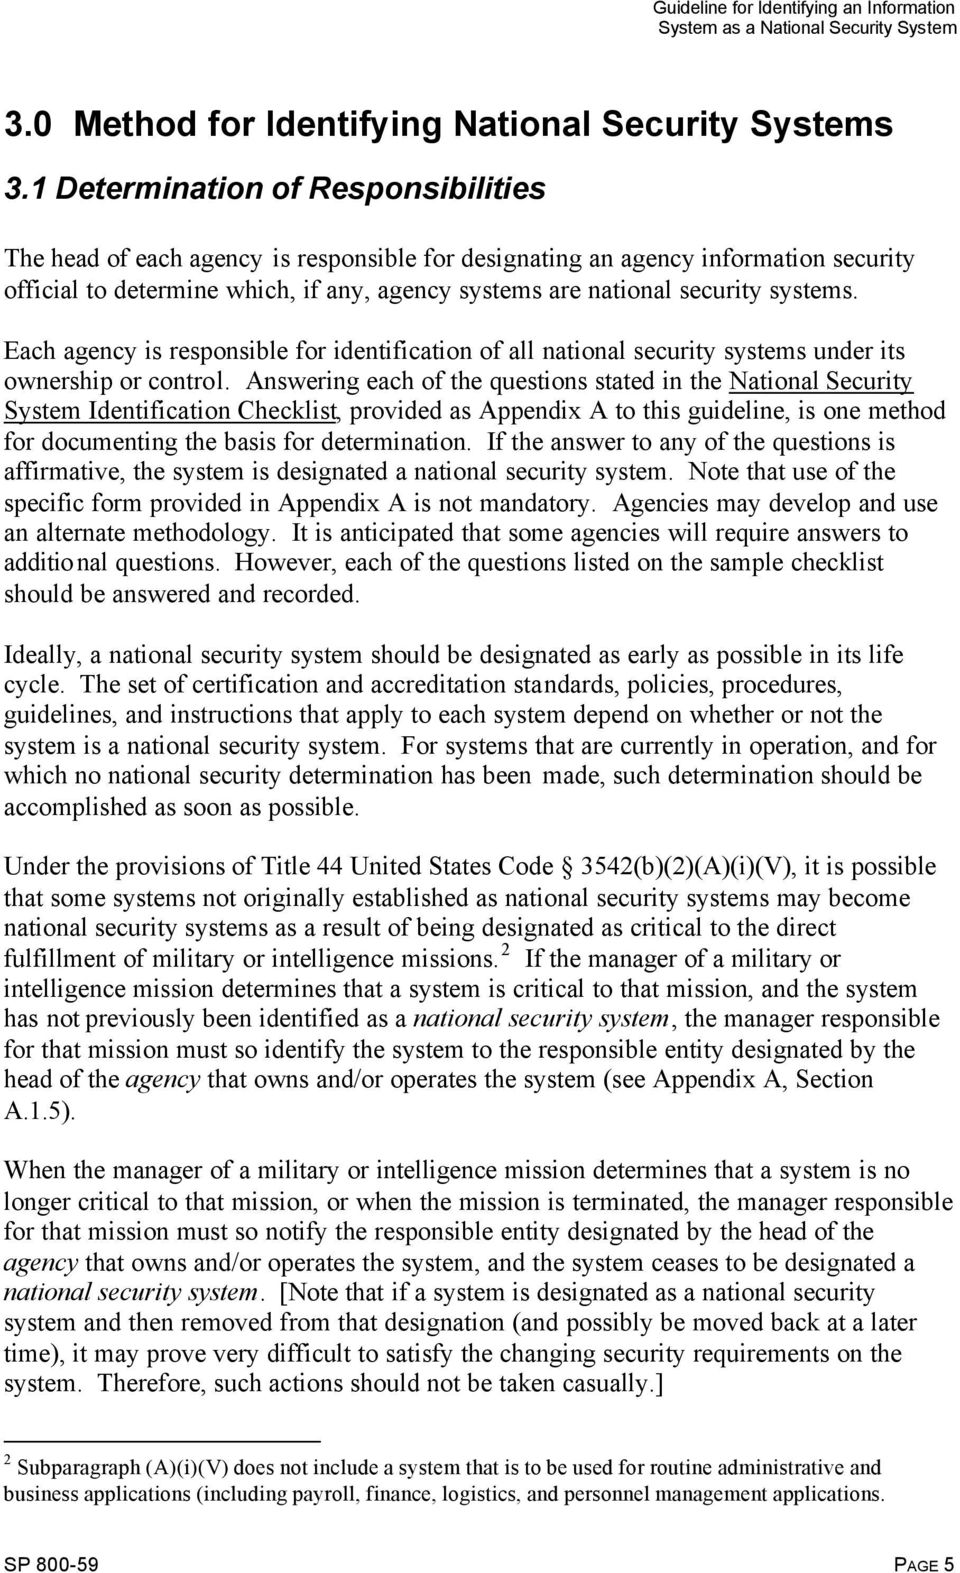 systems. Each agency is responsible for identification of all national security systems under its ownership or control.